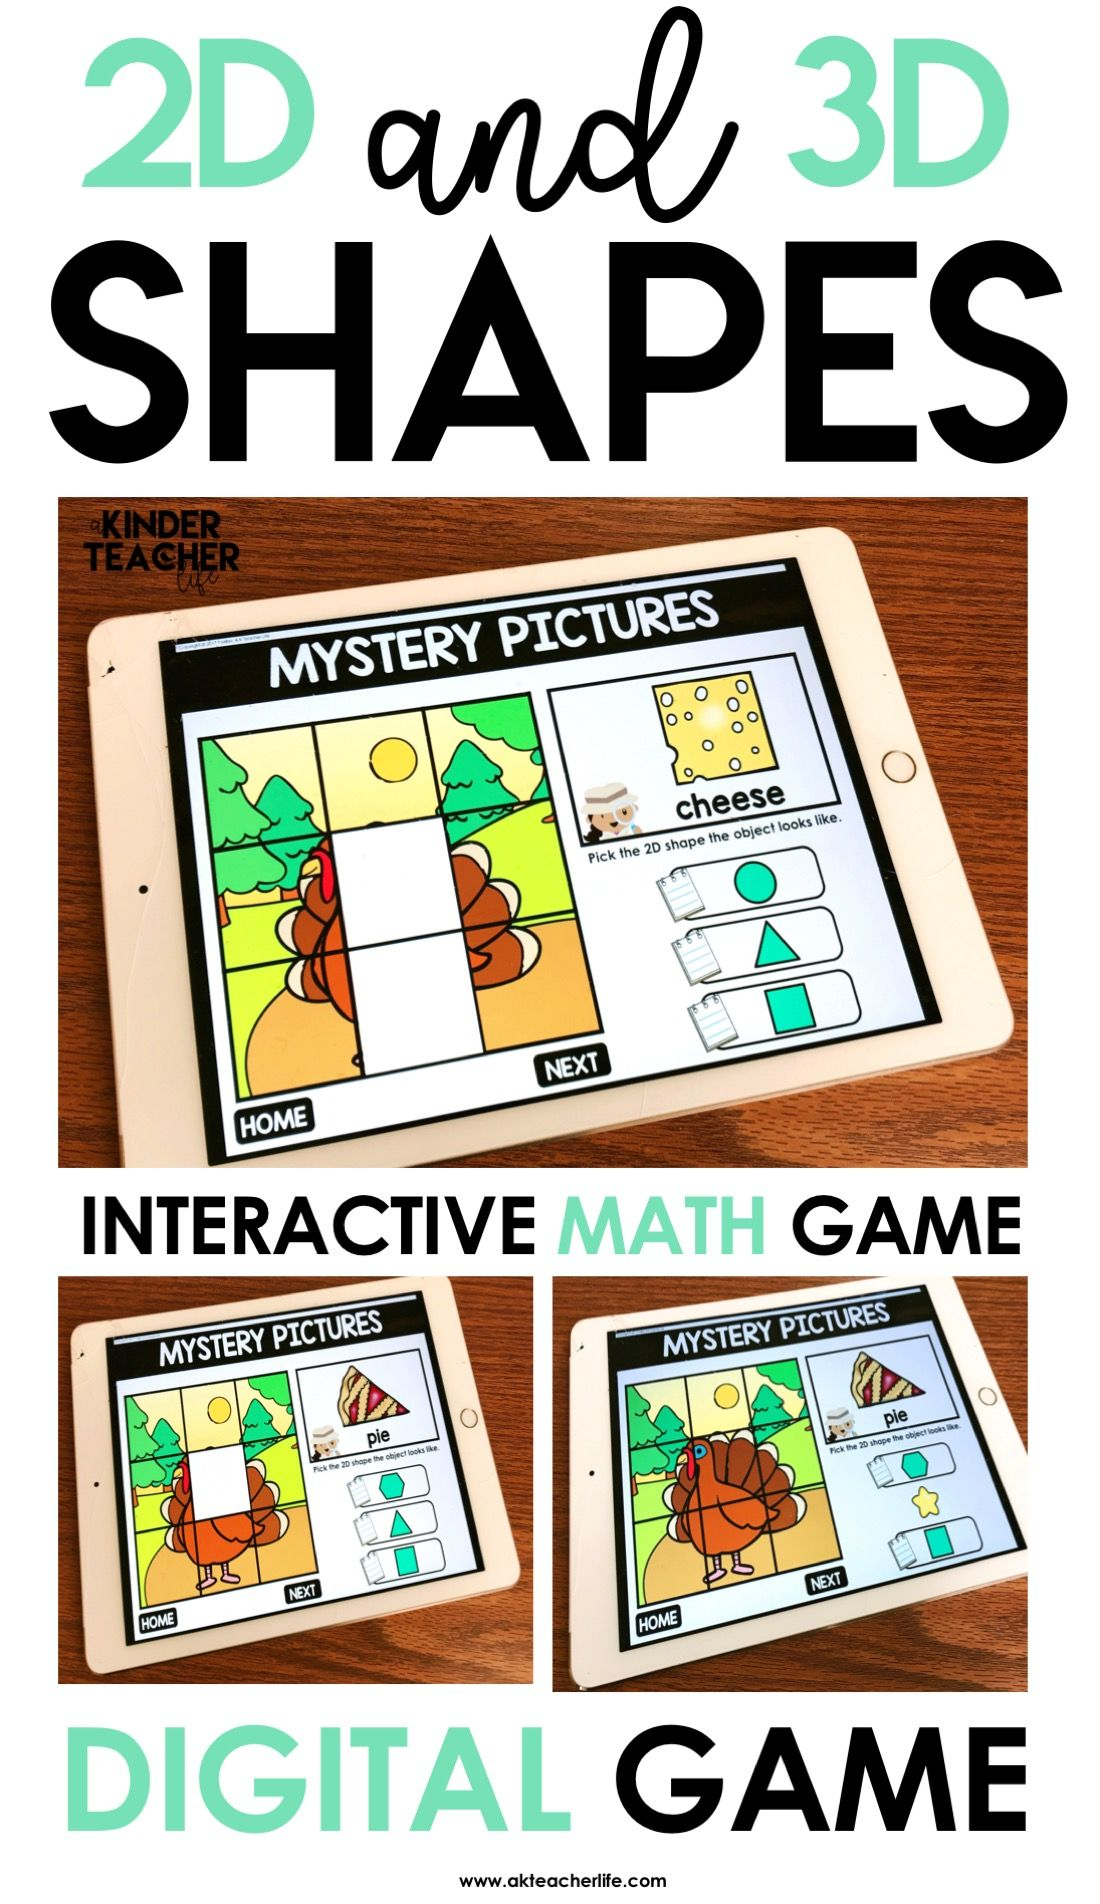 2d And 3d Shapes Game